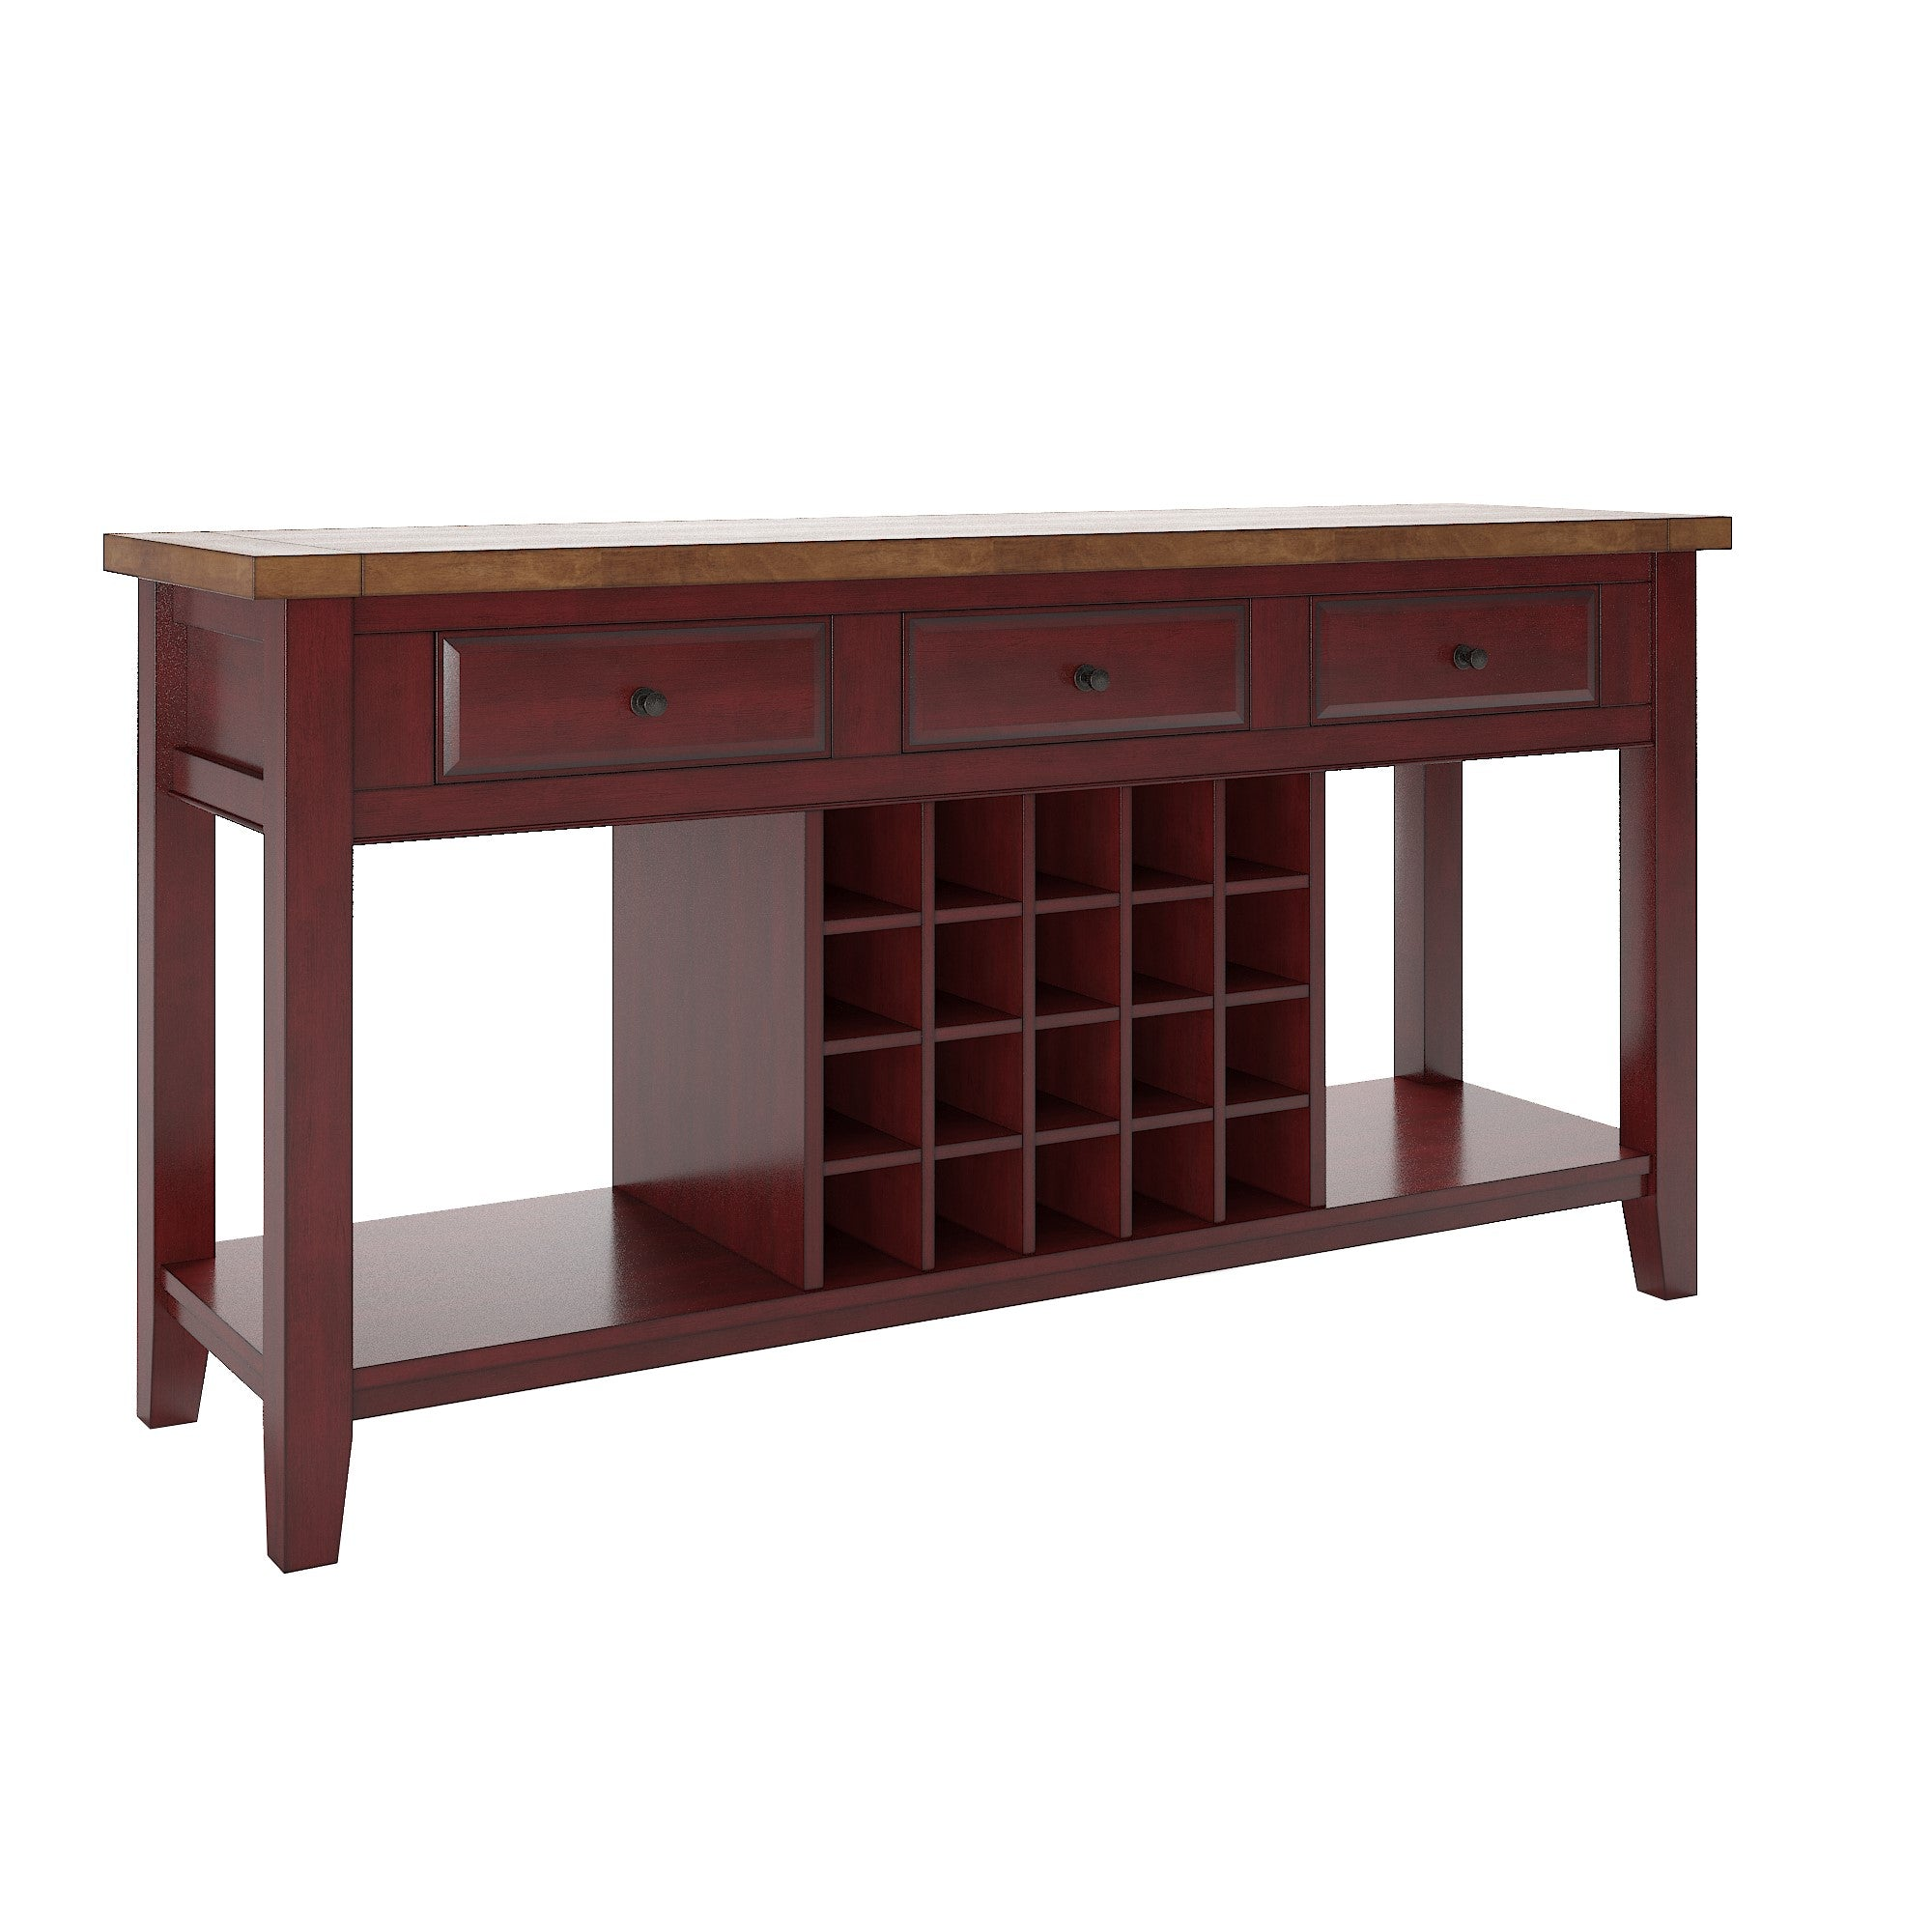 Two-Tone Wood Wine Rack Buffet Server - Oak Top With Antique Berry Red Base